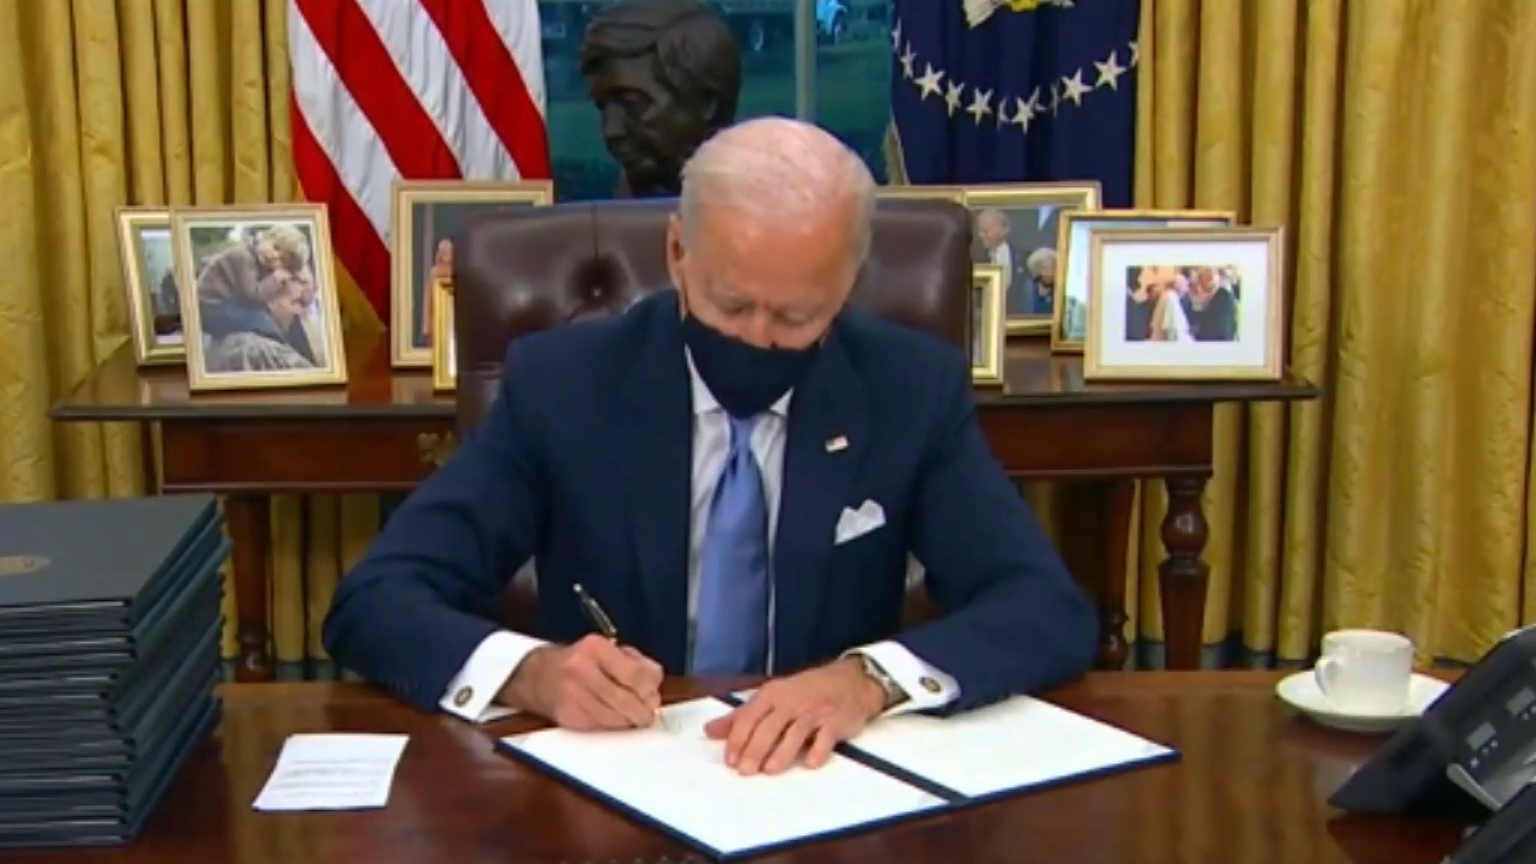 Joe Biden signs coronavirus executive orders